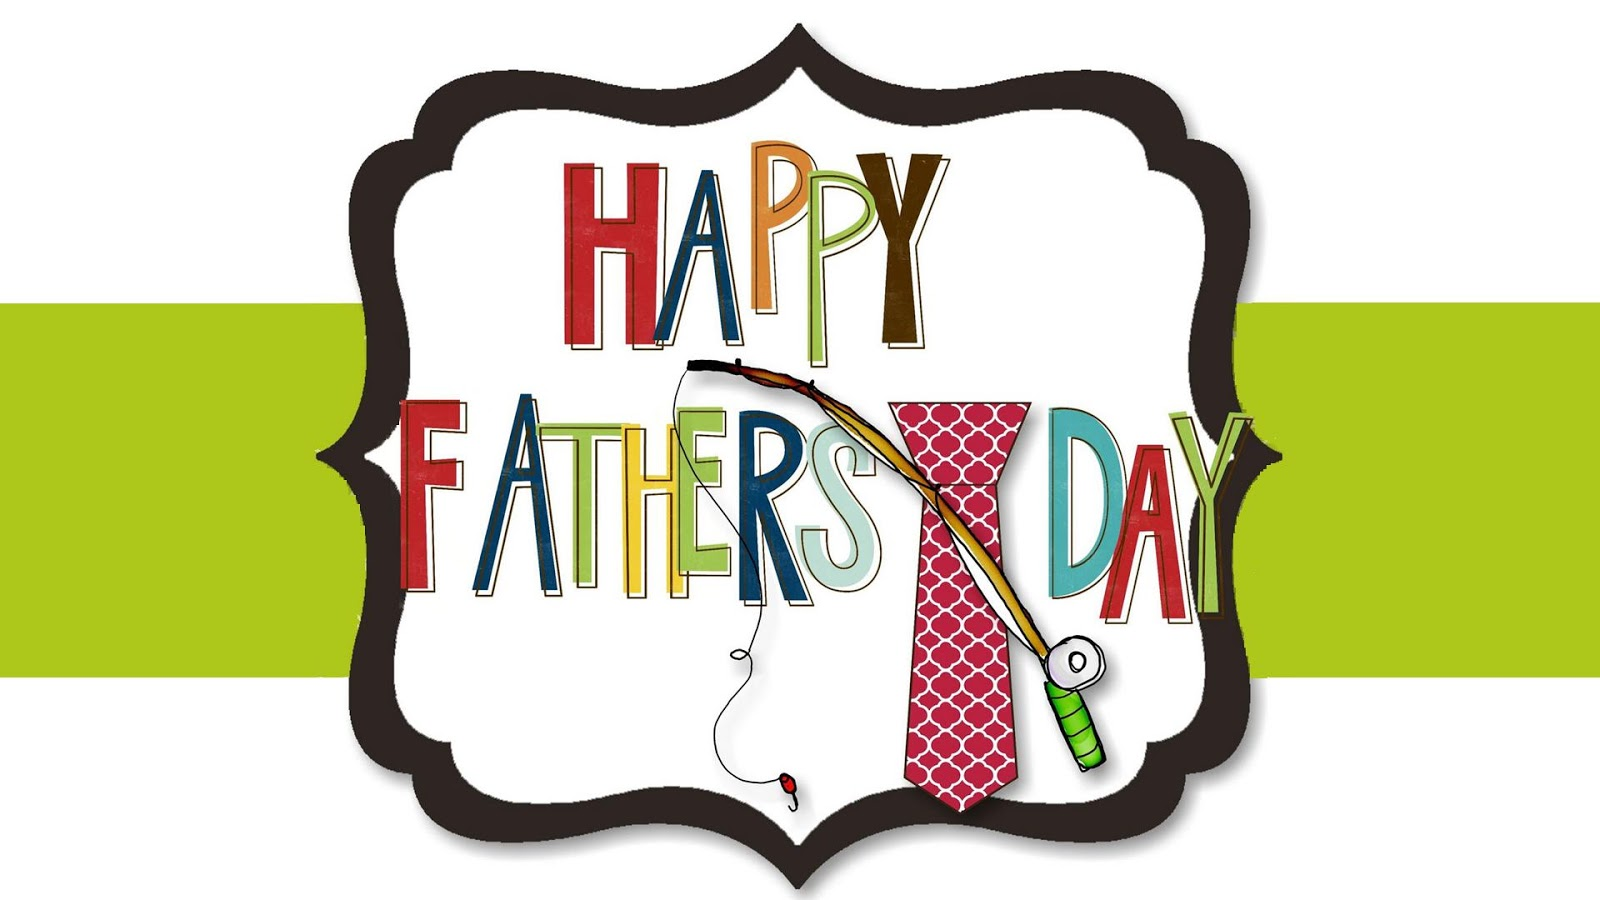 Fathers day 2016 images pictures greeting pics for download fathers day greeting for download kristyandbryce Gallery